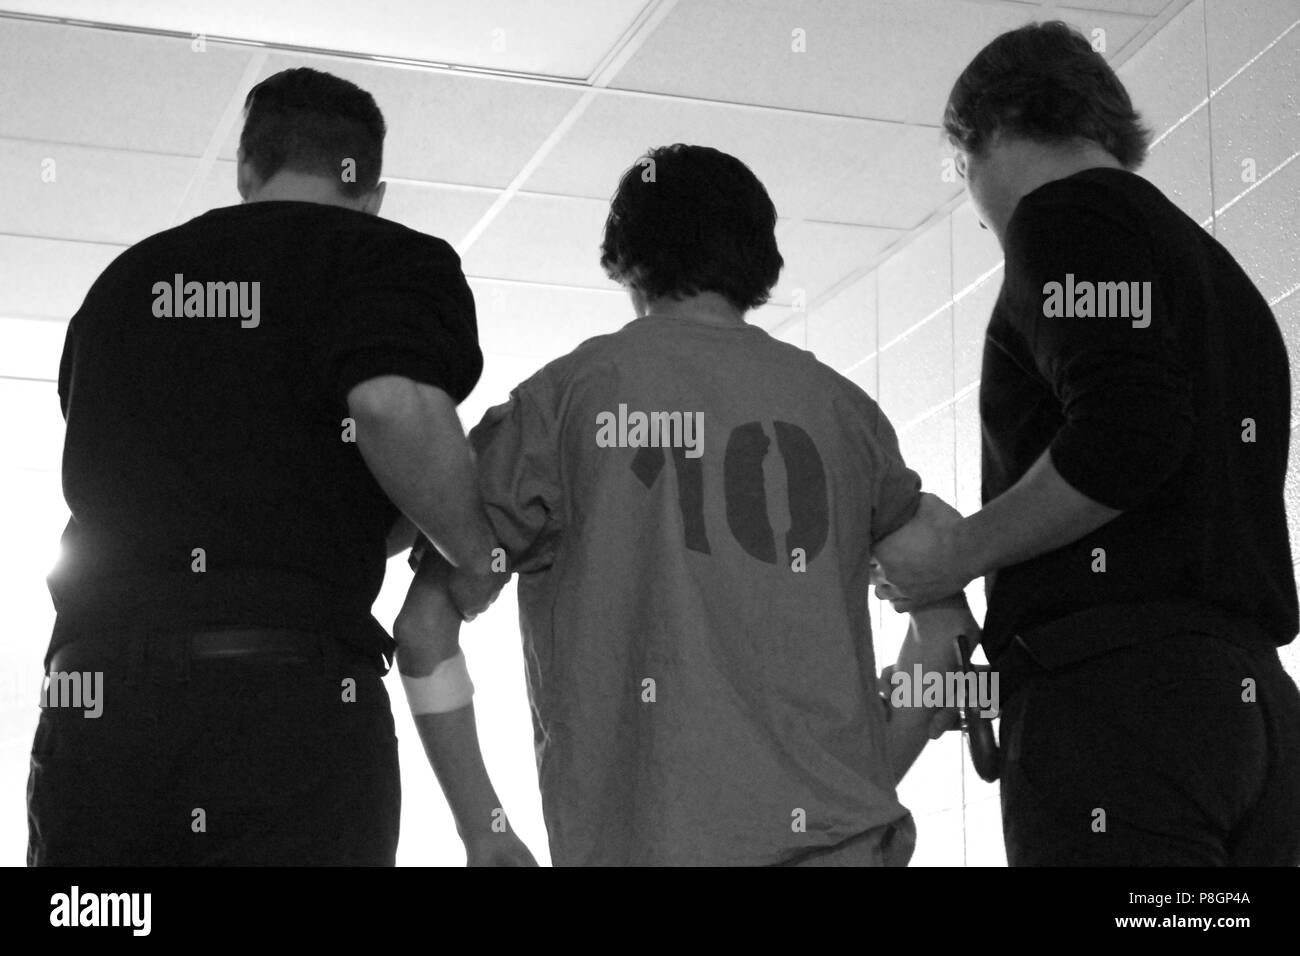 Prison Guards Black And White Stock Photos Images Alamy